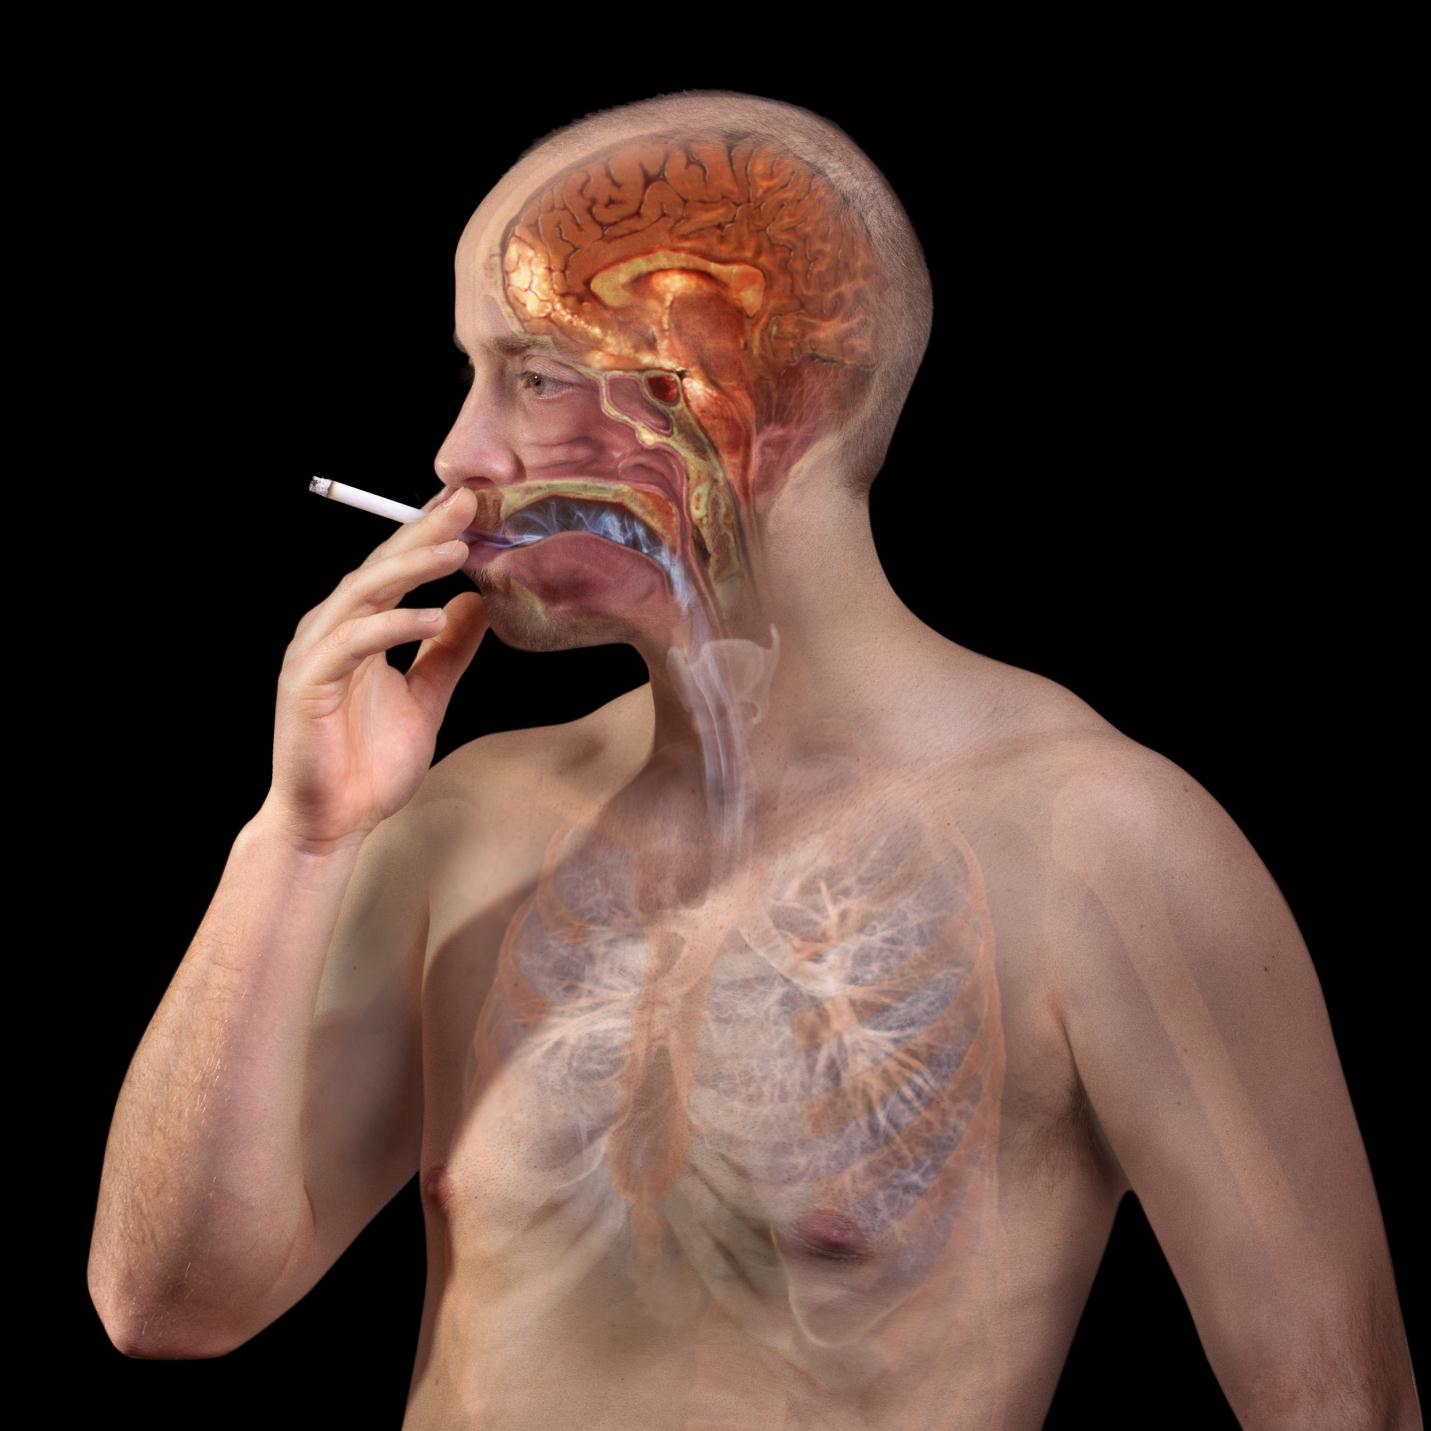 Nicotine Withdrawal & Quit Smoking: Effects, Symptoms and Treatment of Nicotine Withdrawal